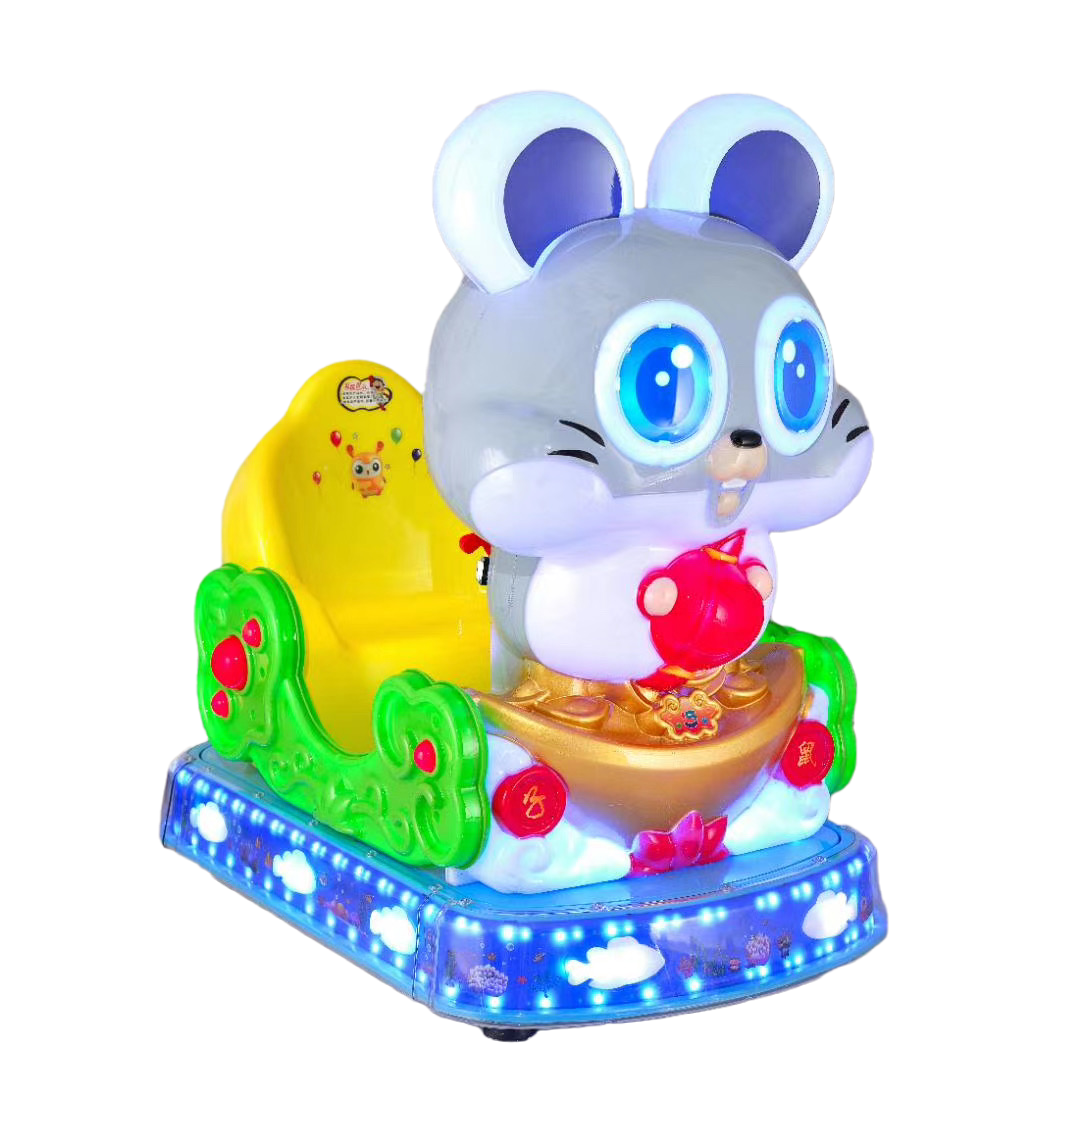 Dinibao Cute Mouse Kiddie Rides Coin Operated Ride Machine